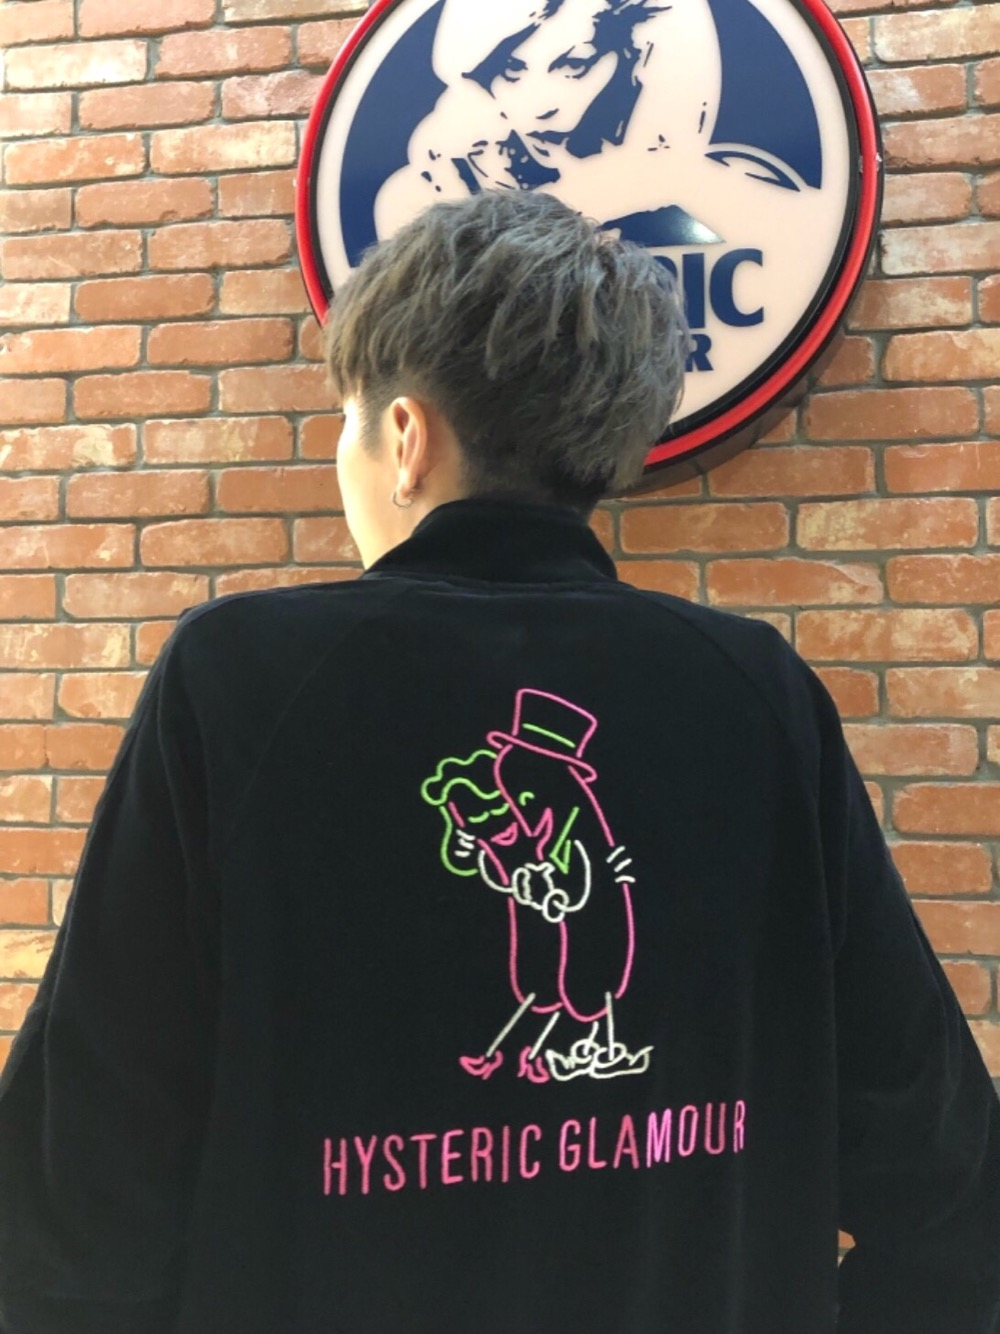 HYSTERIC GLAMOURミント神戸店